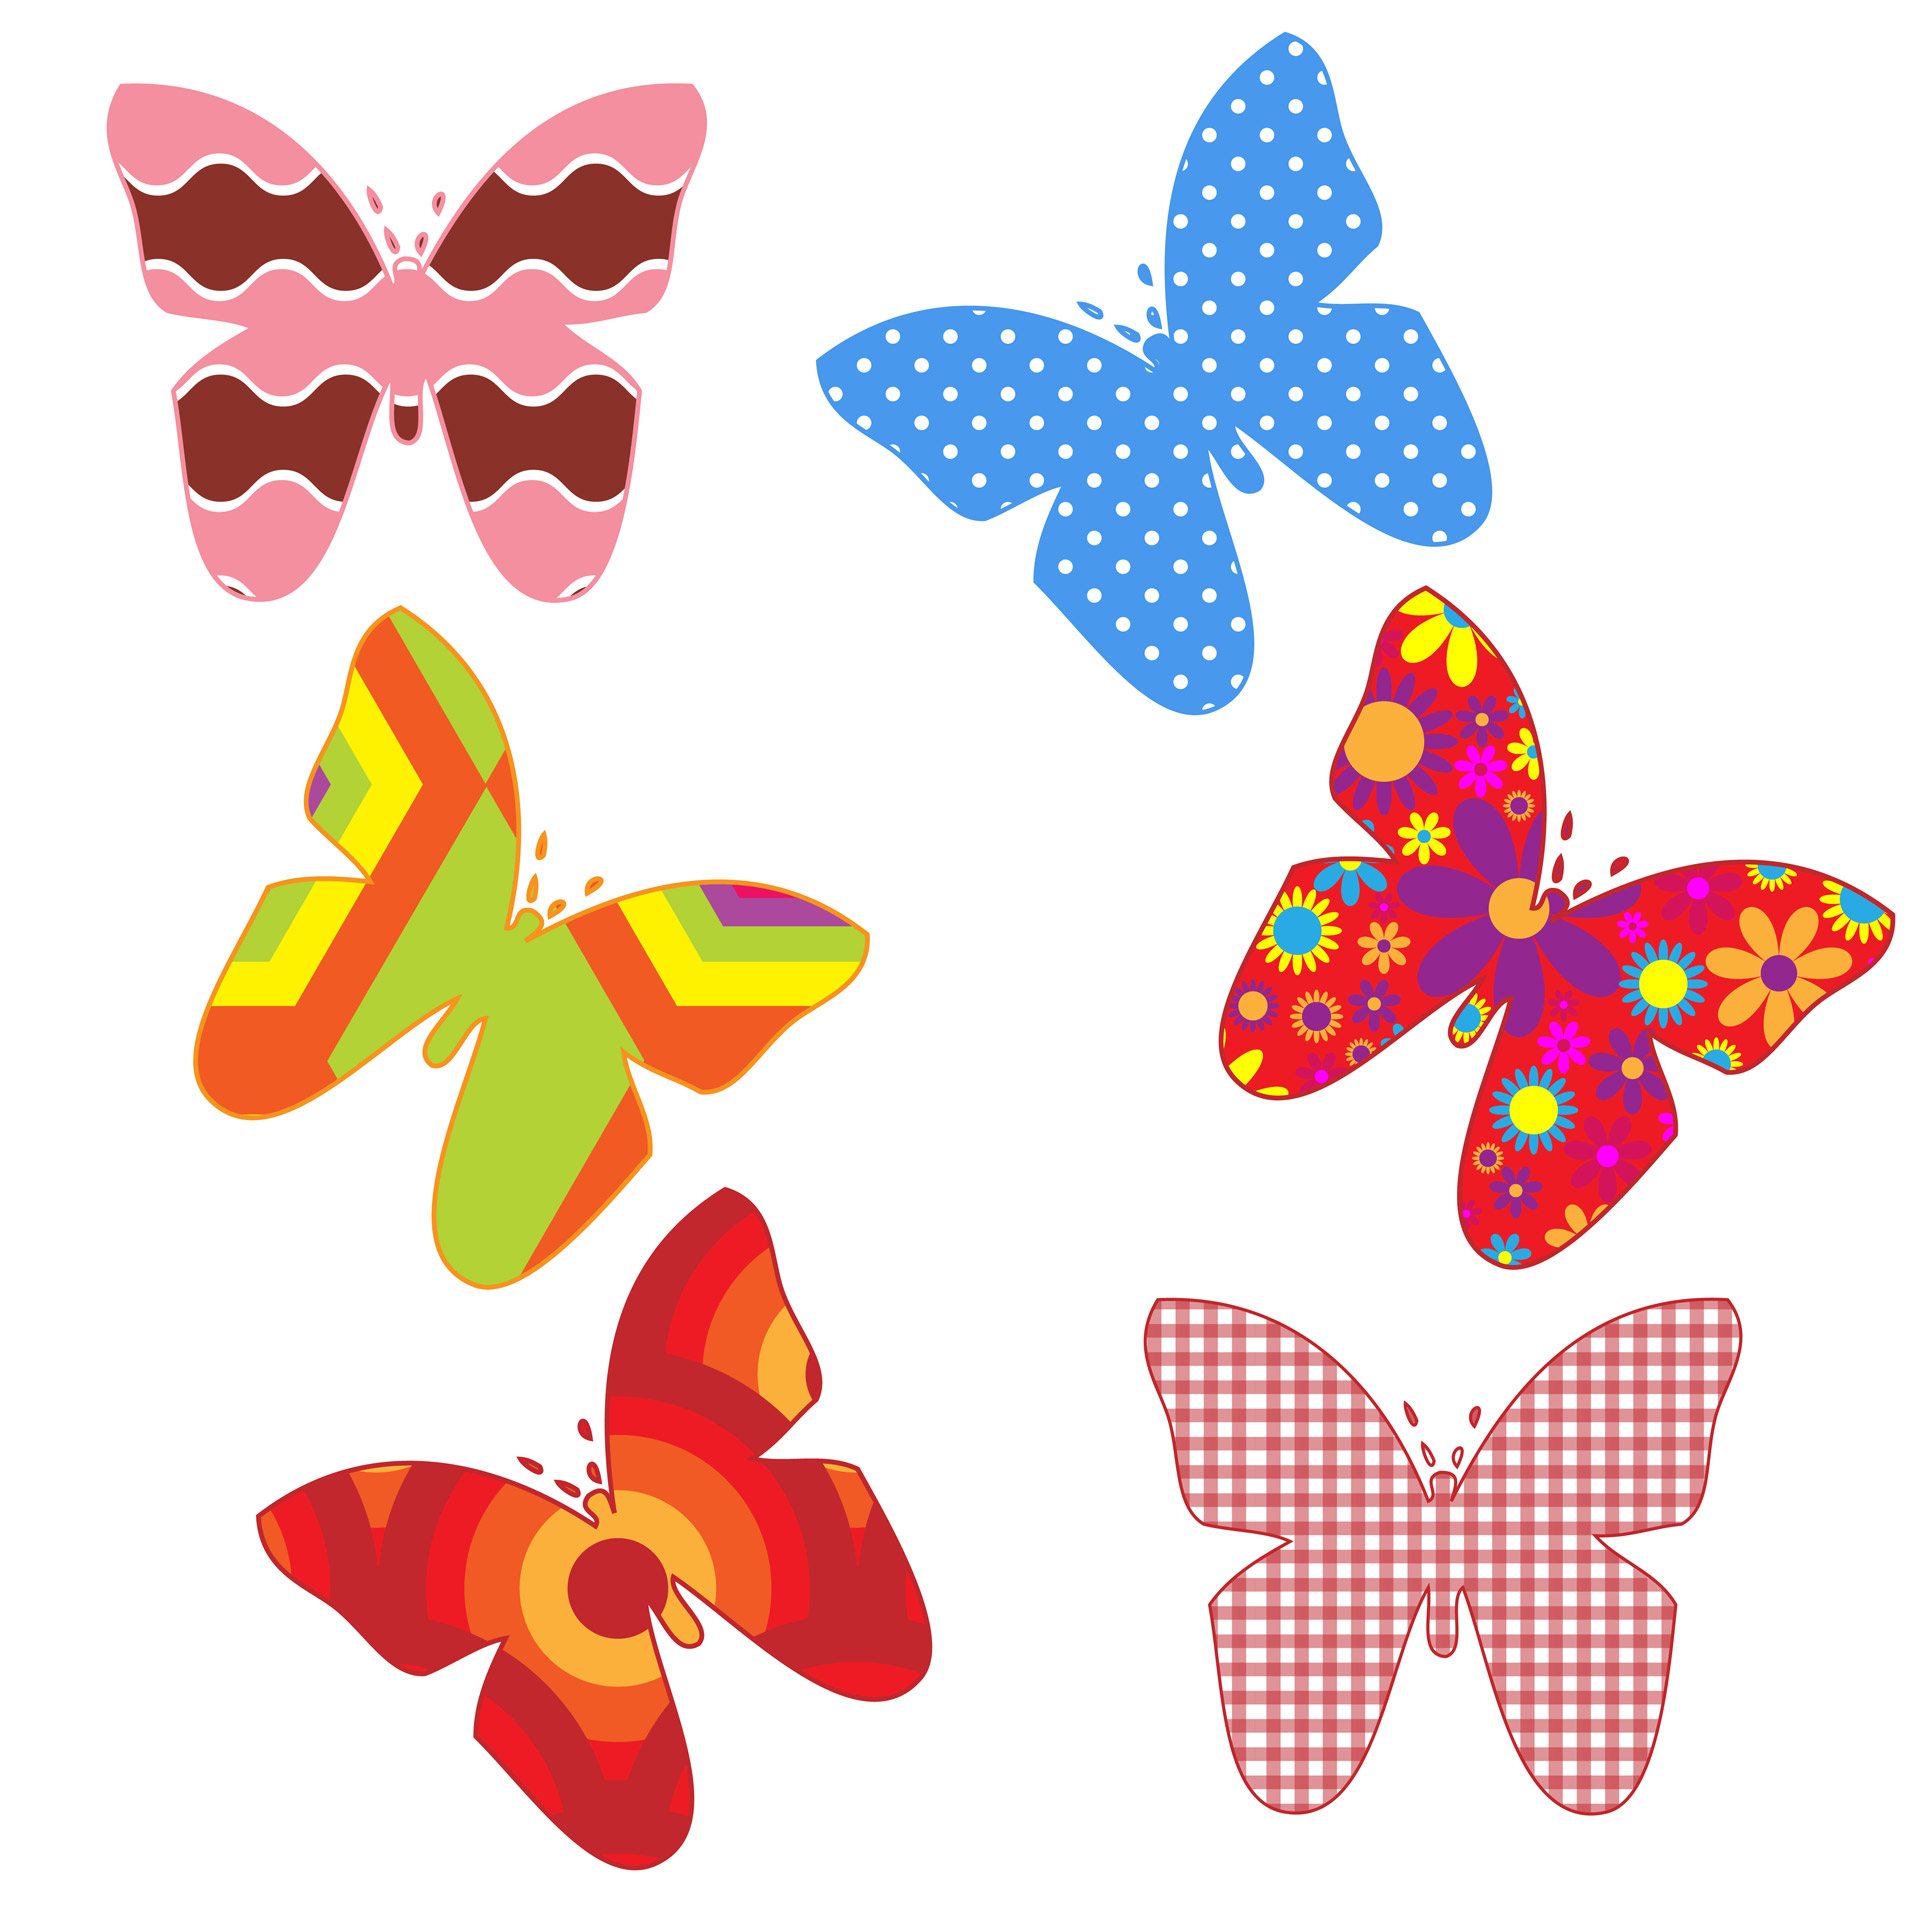 Colorful free stock photo. Butterflies clipart polka dot